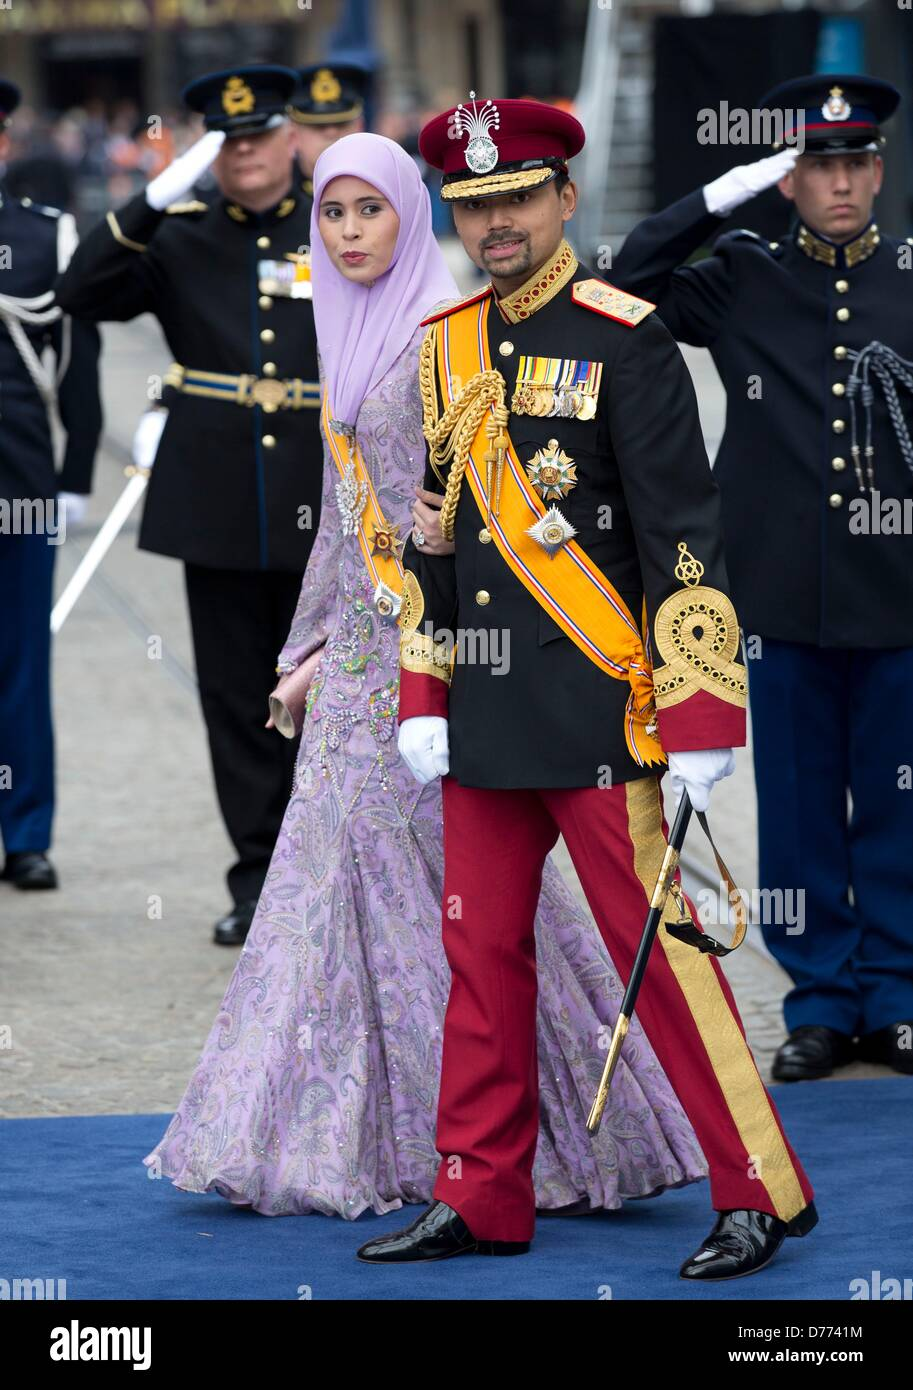 Prince al muhtadee billah of brunei darussalam and princess sarah of stock photo royalty free - Princesse sarah 30 ...